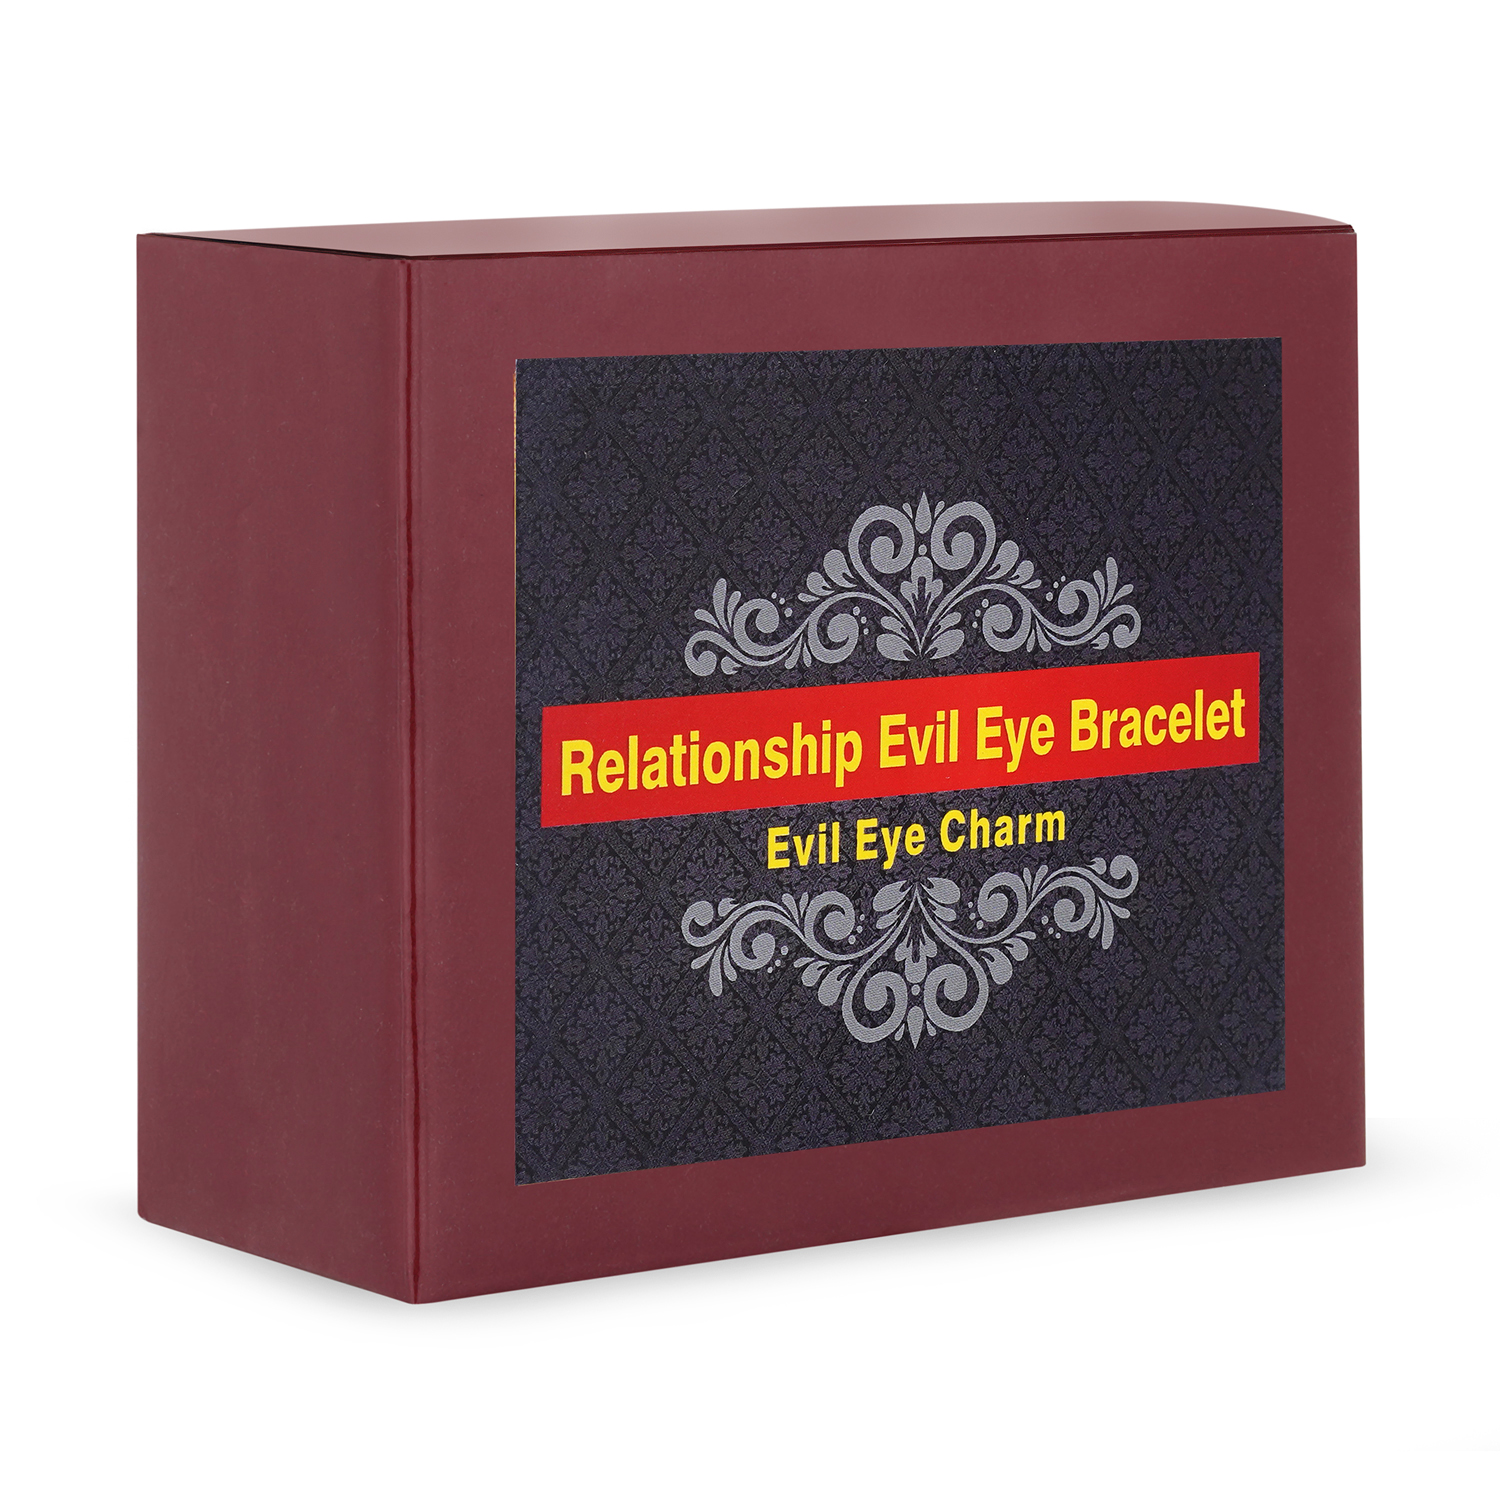 Relationship Evil Eye Braclet